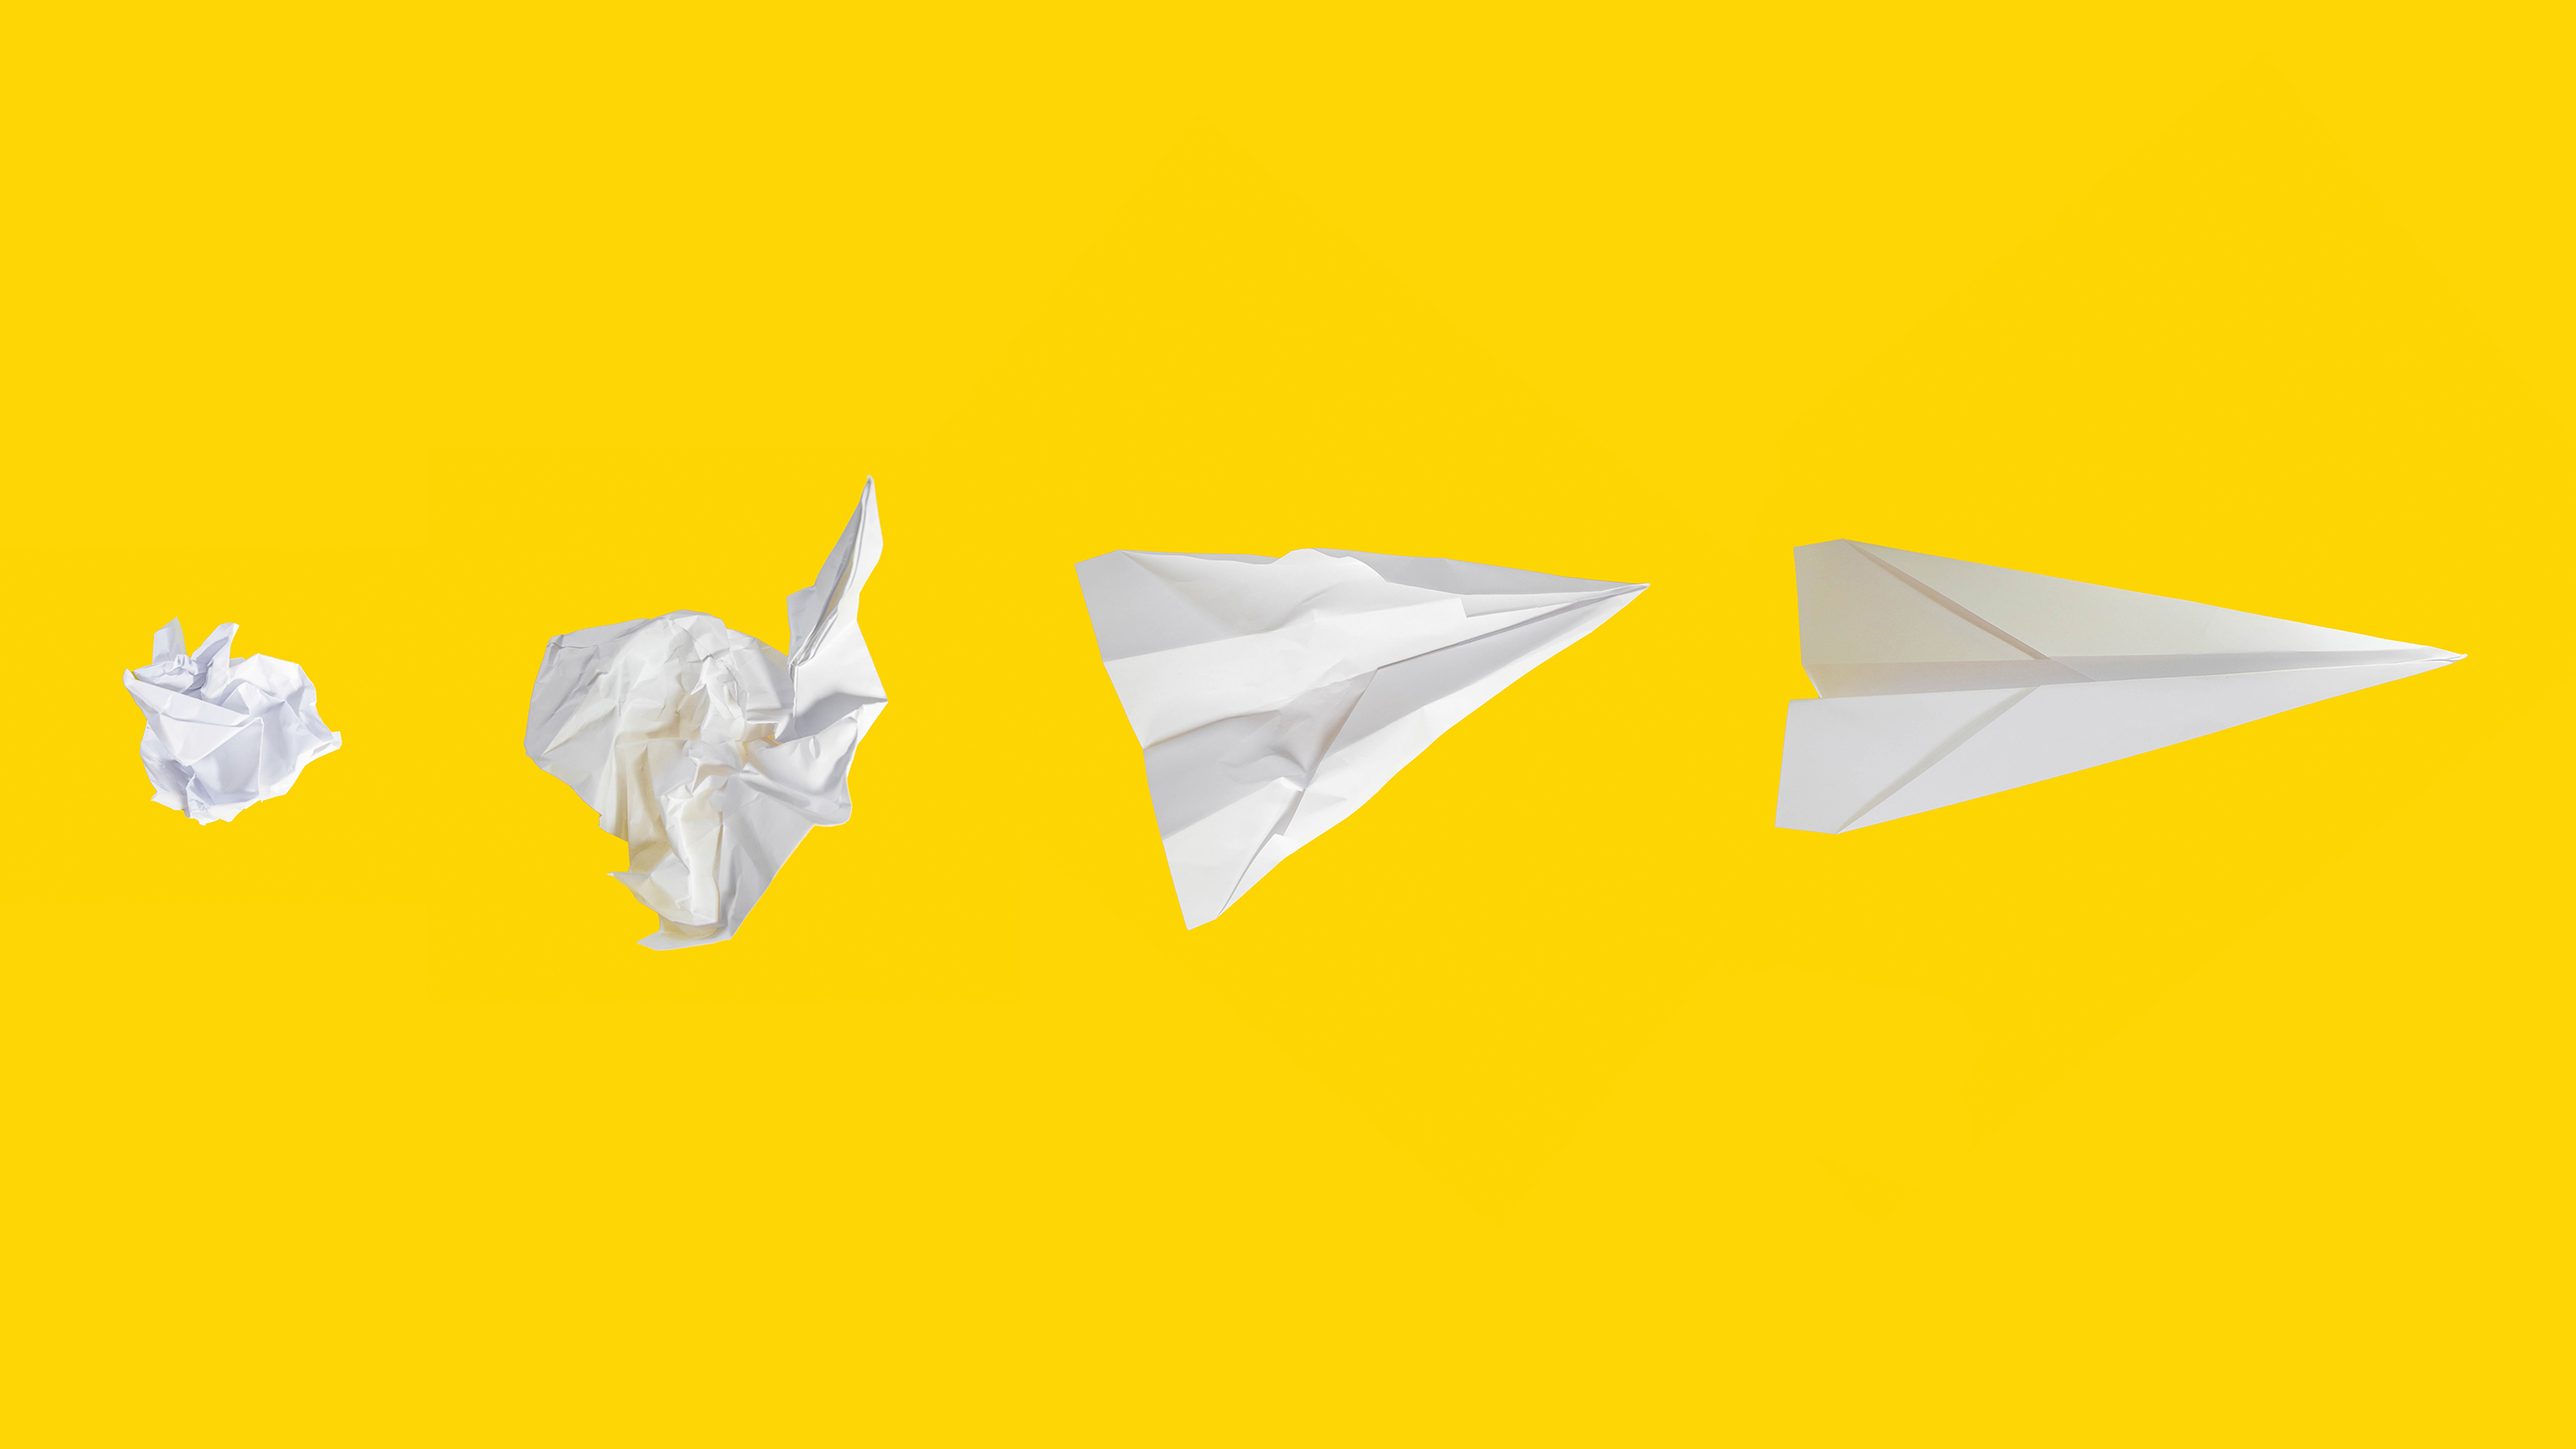 Crumpled paper aeroplanes on a yellow background.